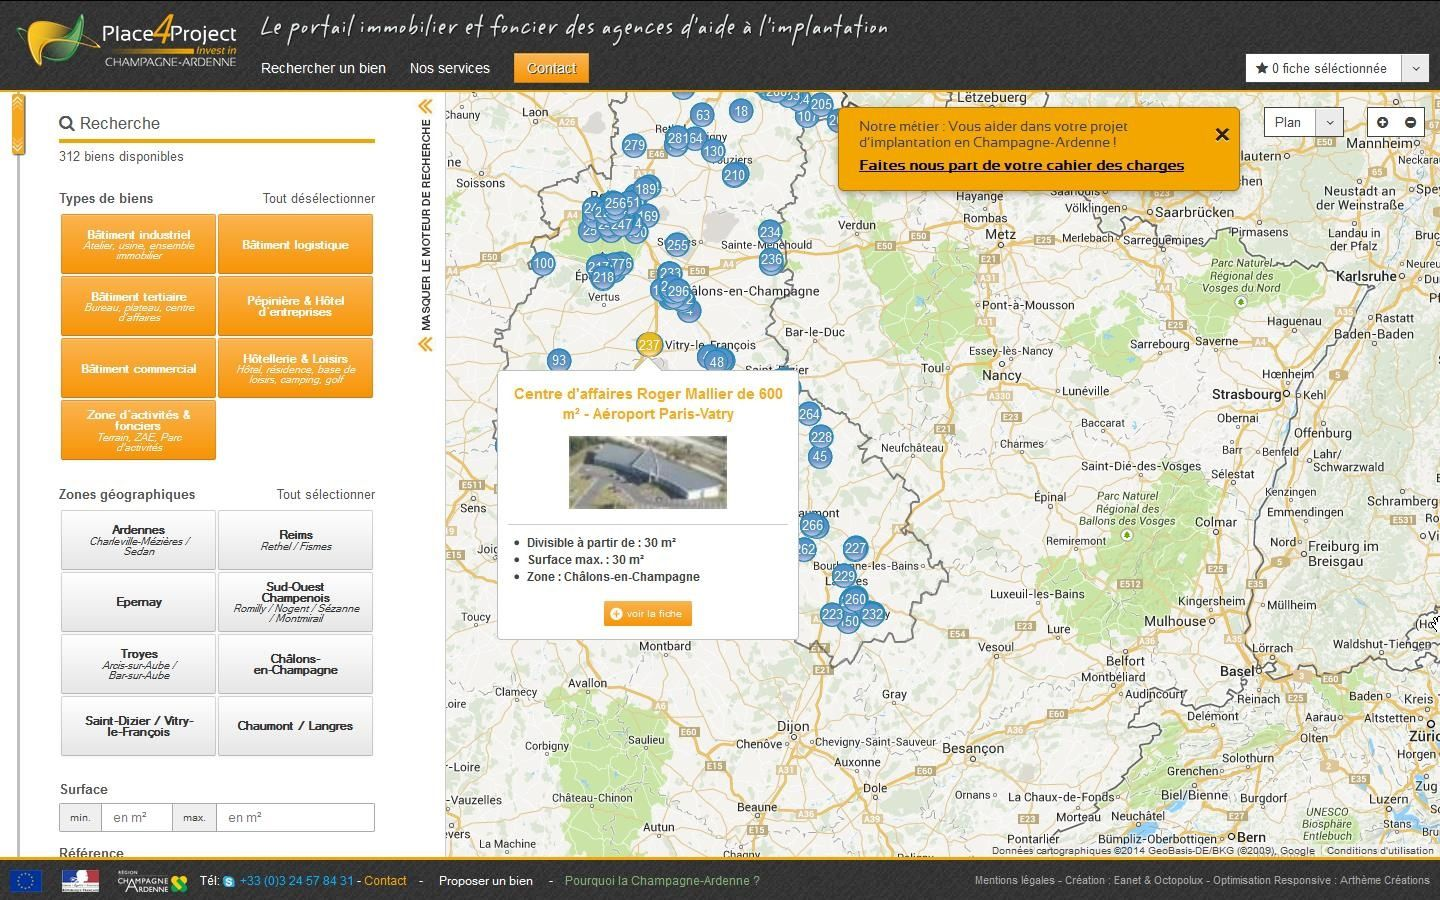 Page d'accueil du site Internet Place4Projects, mars 2014